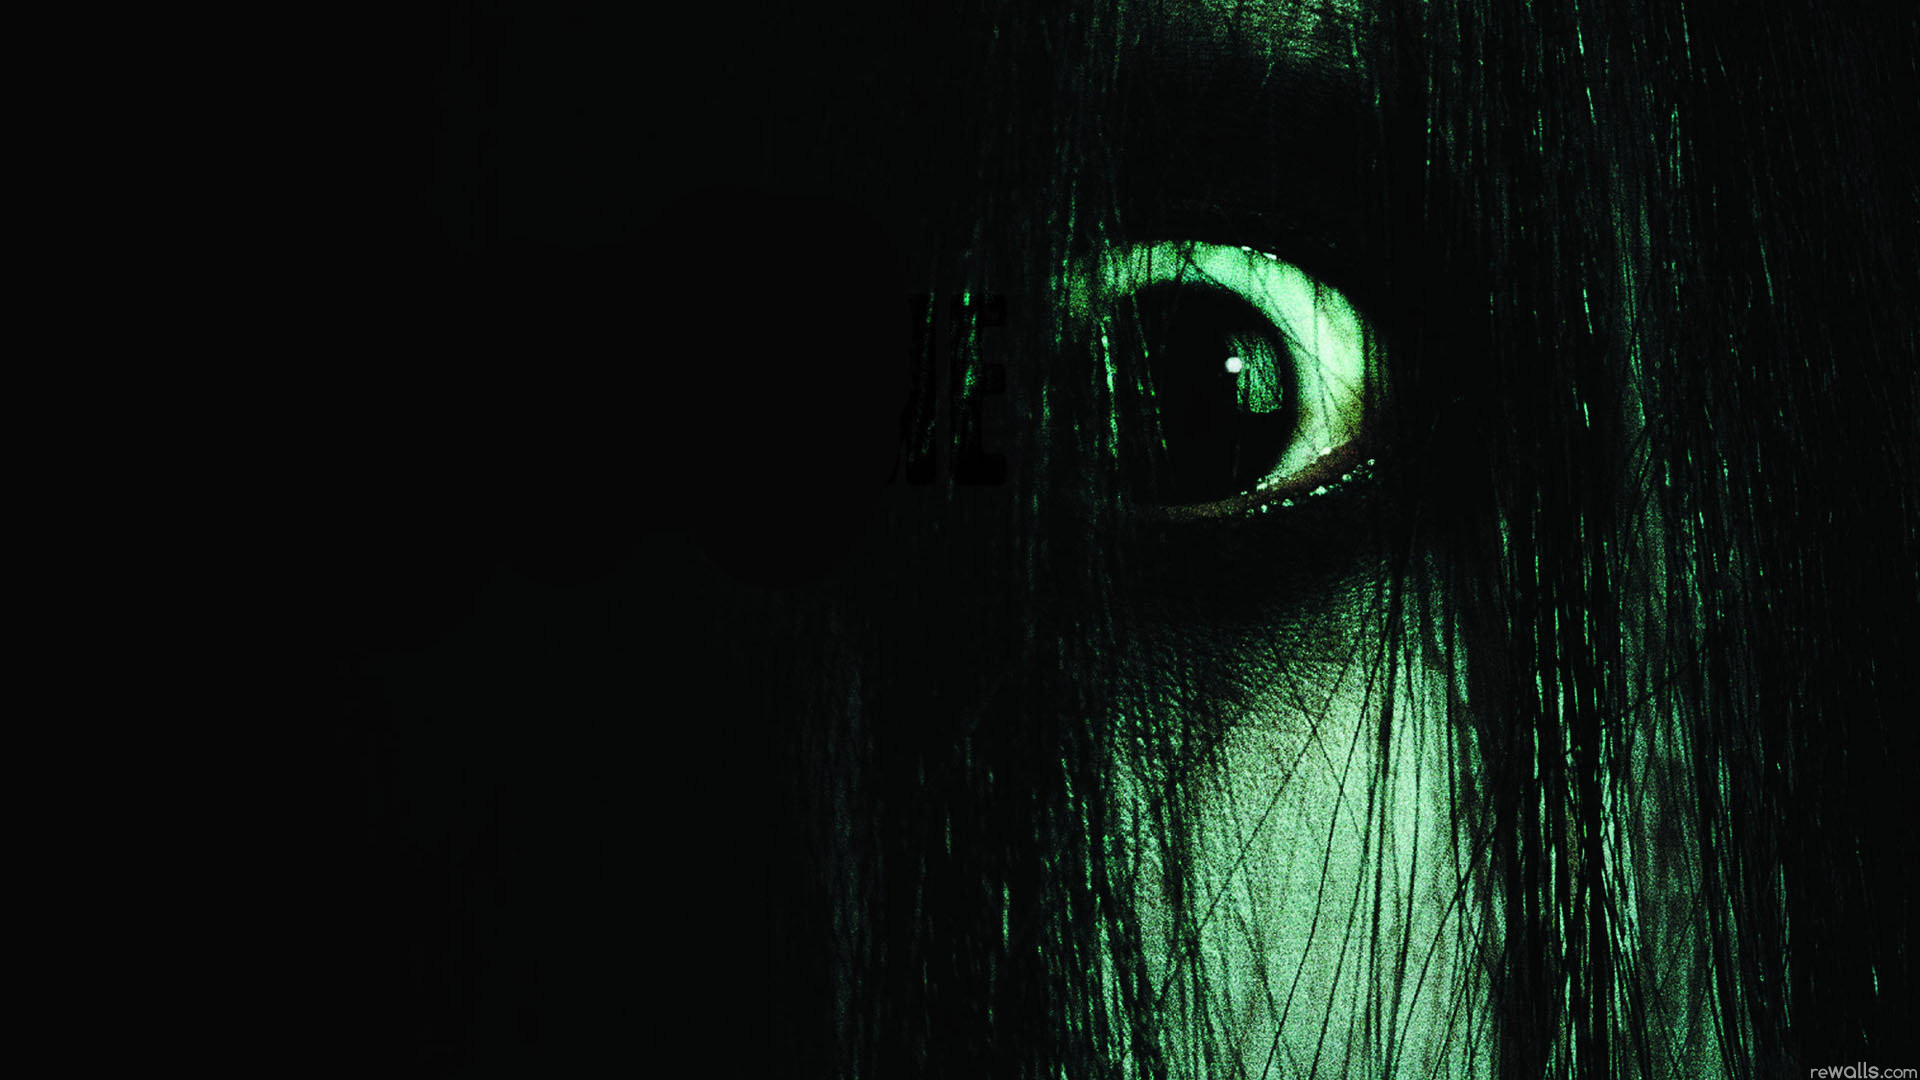 87 Most Haunting Scary Wallpapers of All TIme 1920x1080